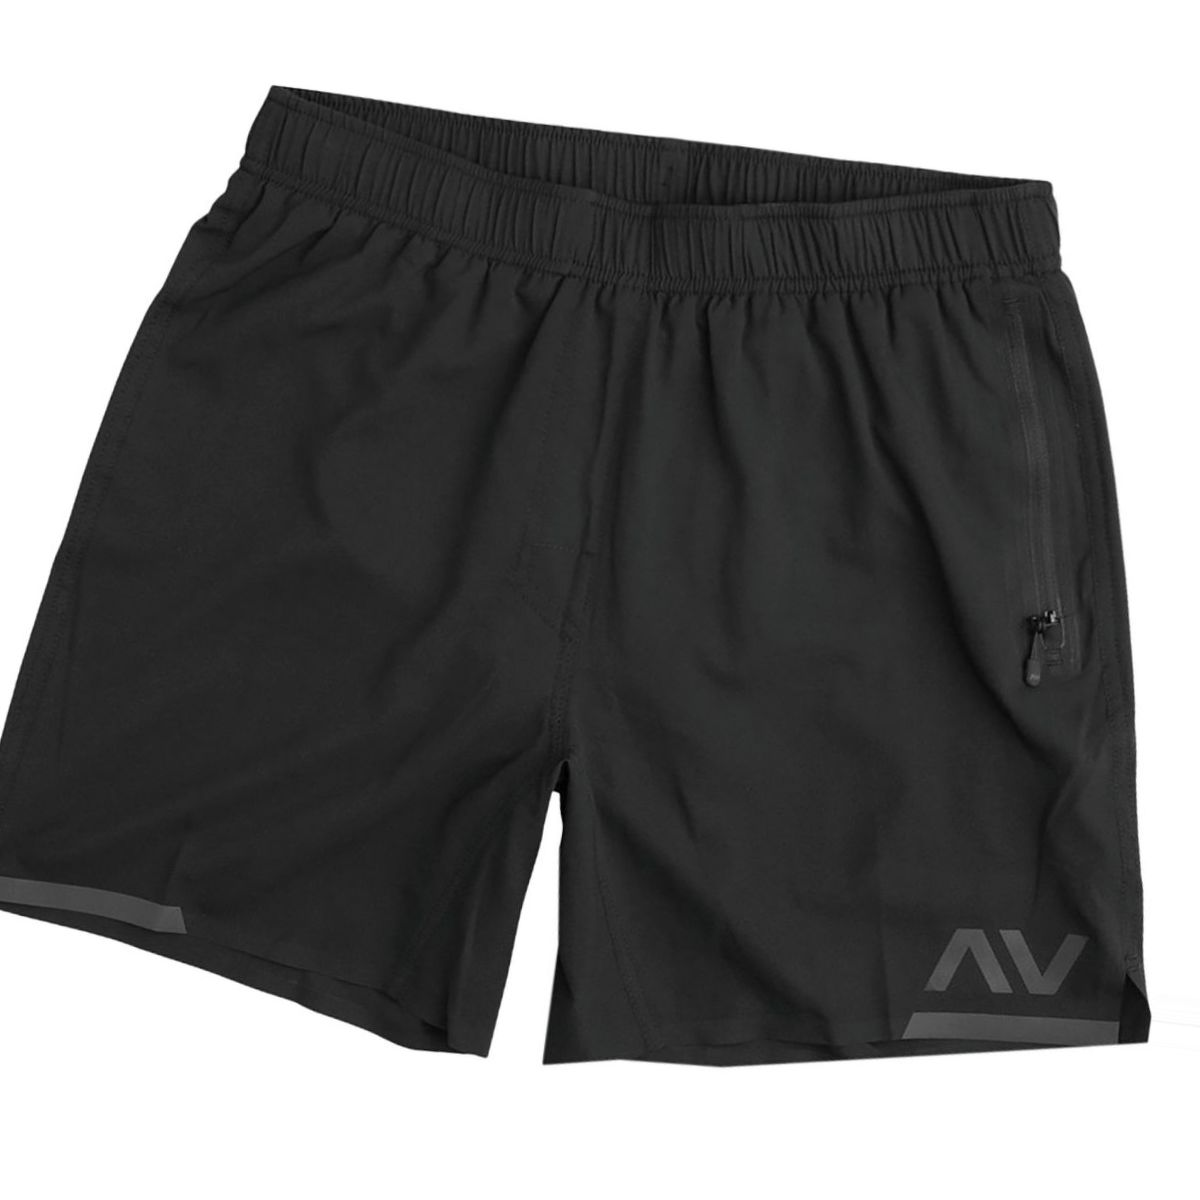 RVCA VA Tech Short - Men's